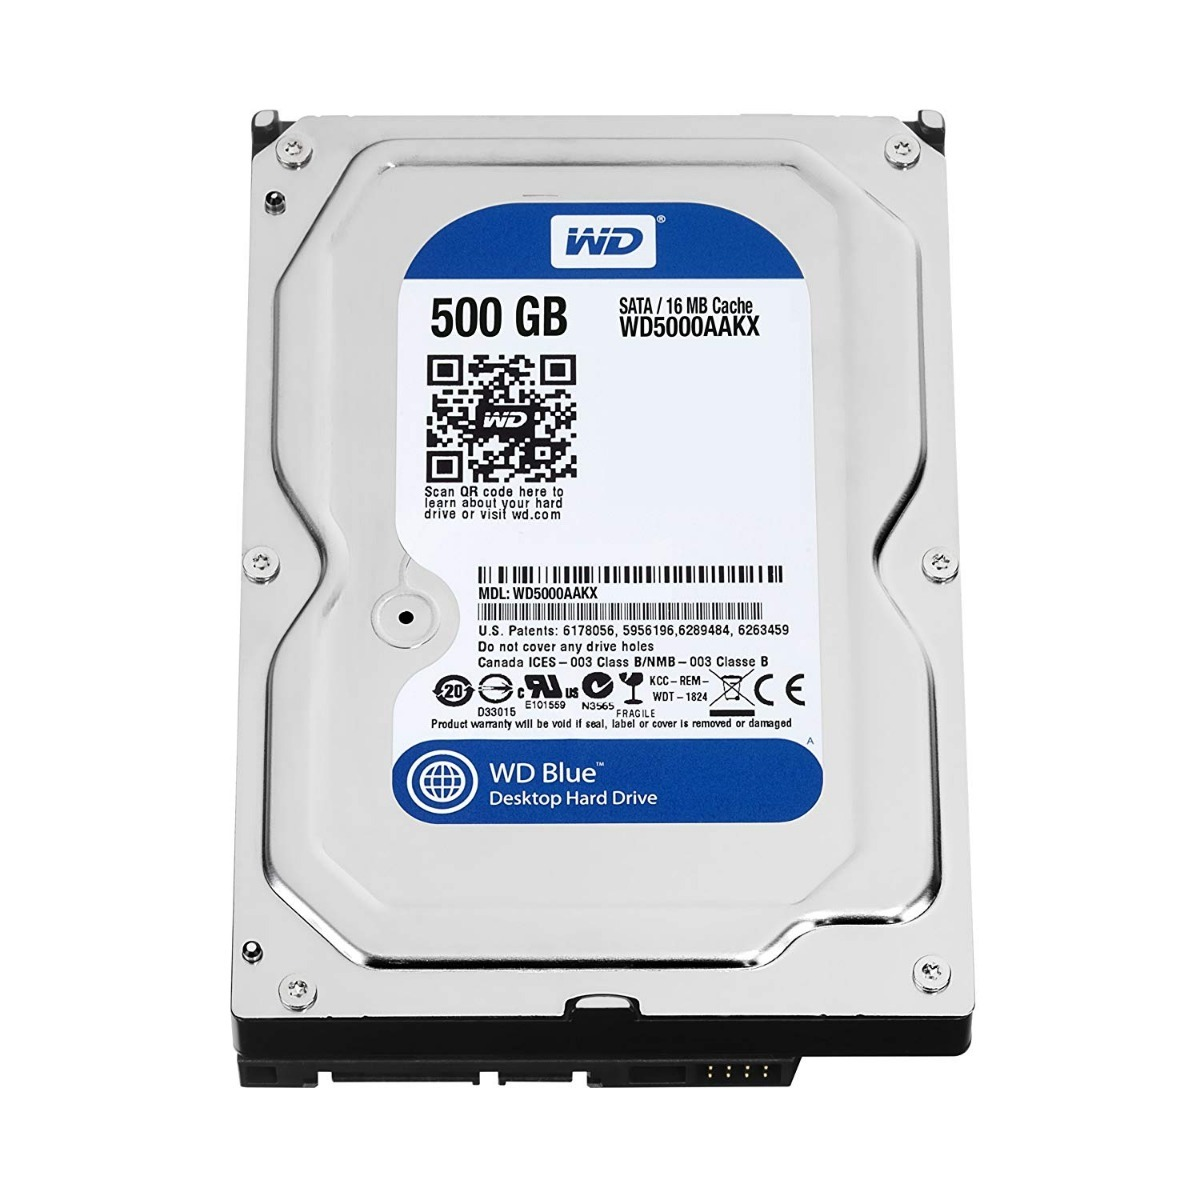 WD5000AA DRIVER FOR WINDOWS 8